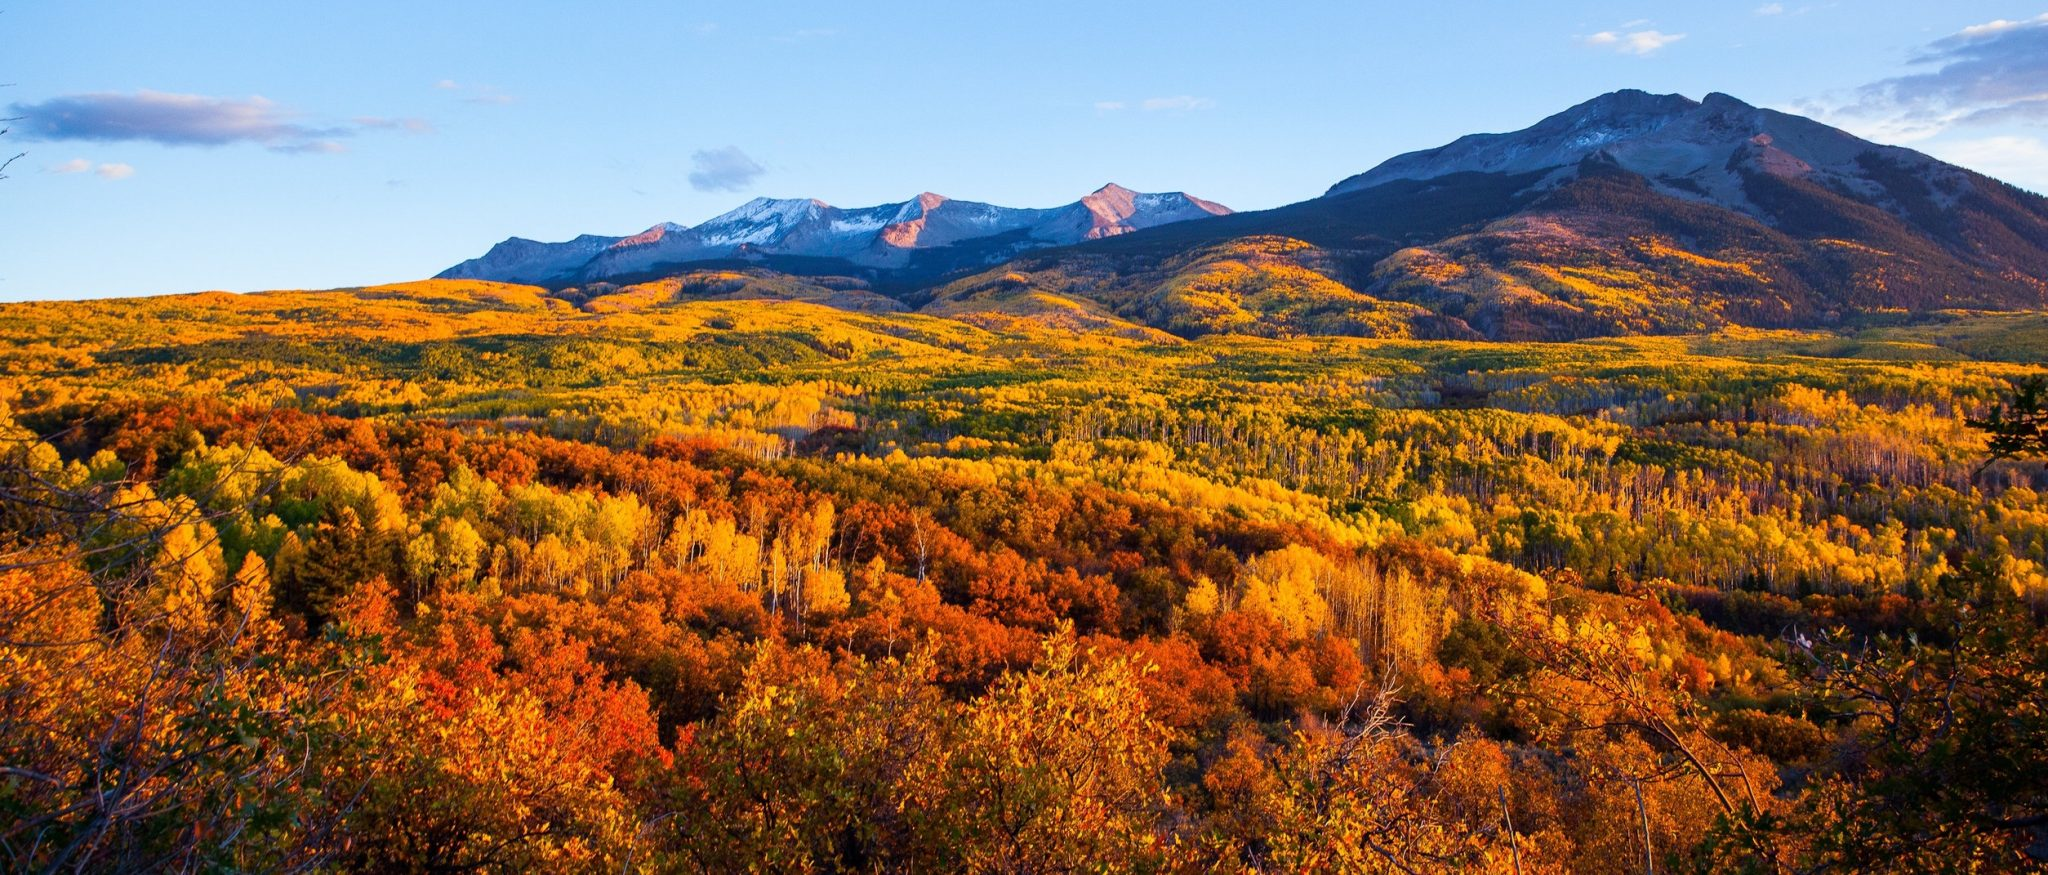 Mountain forest landscape in autumn